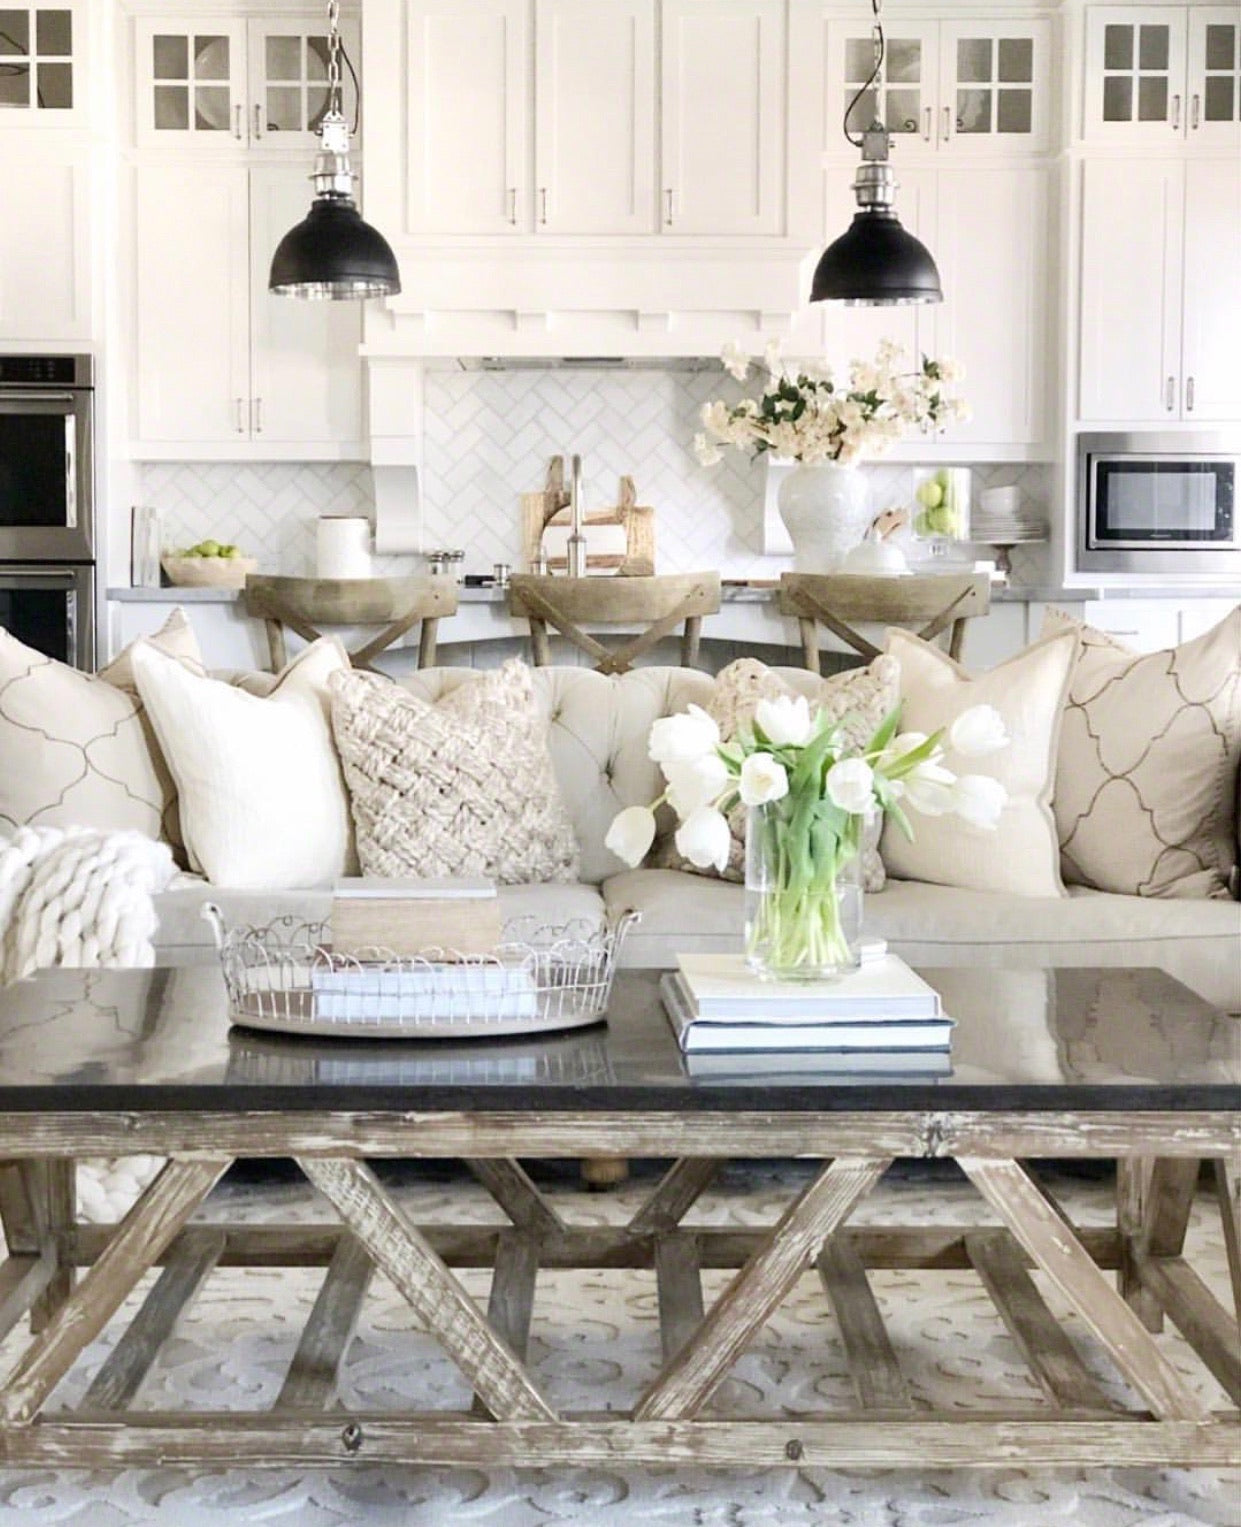 10 Stunning Spring Decorating Tips You Need To Try Right Now | Bello ...